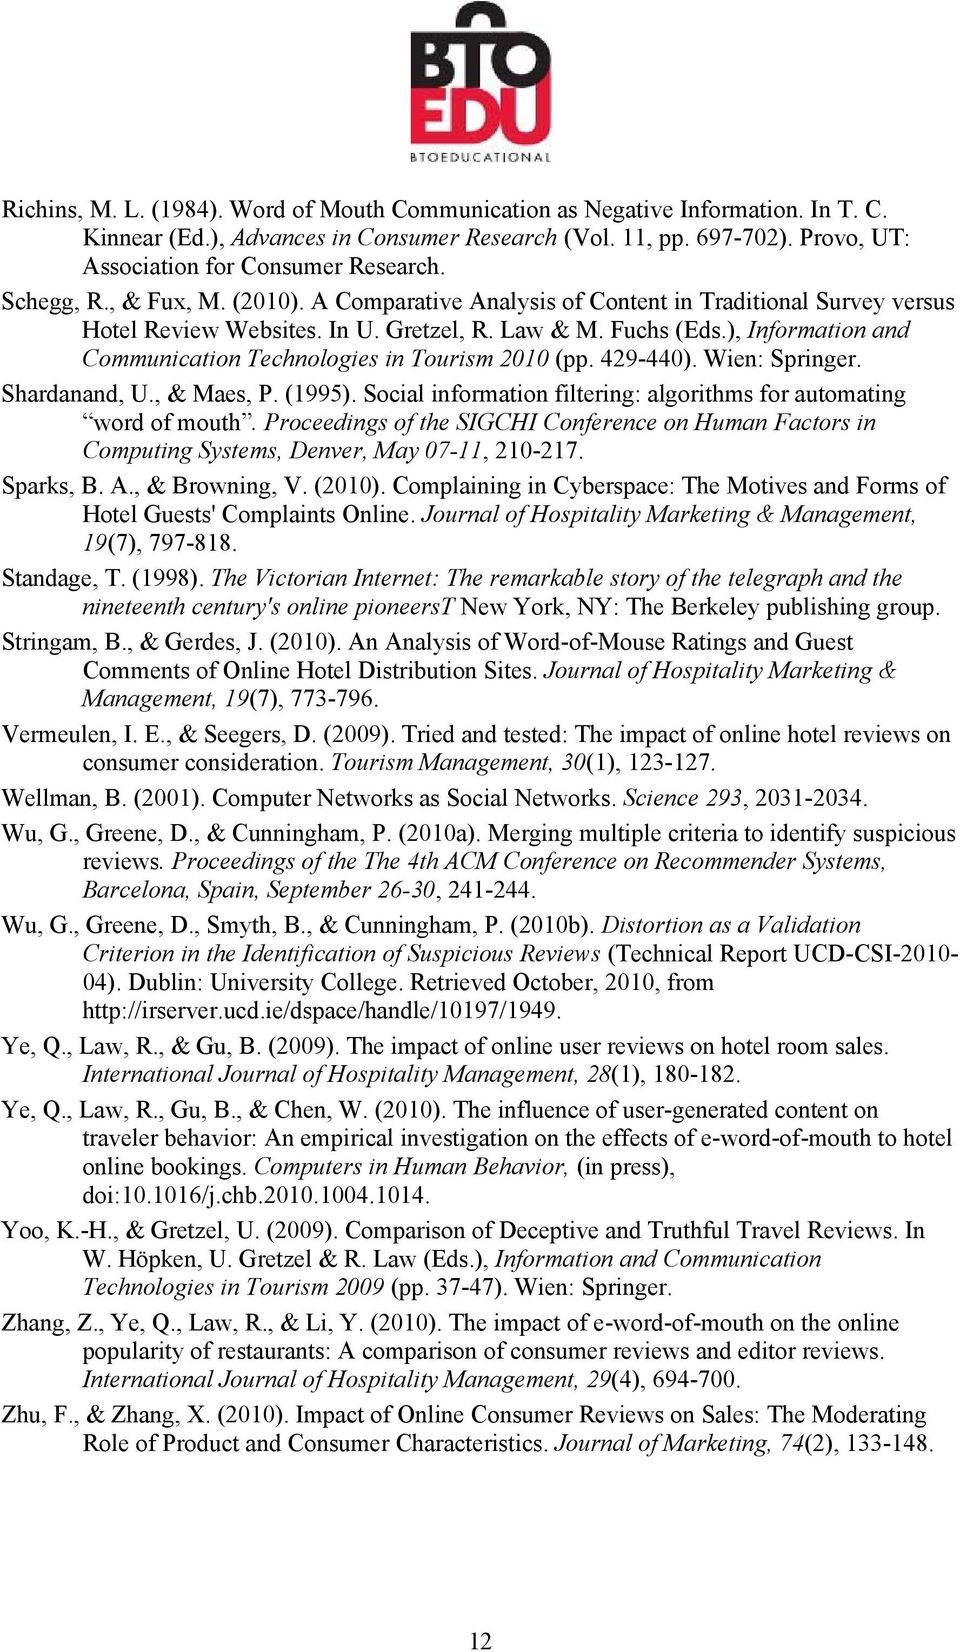 ), Information and Communication Technologies in Tourism 2010 (pp. 429-440). Wien: Springer. Shardanand, U., & Maes, P. (1995). Social information filtering: algorithms for automating word of mouth.